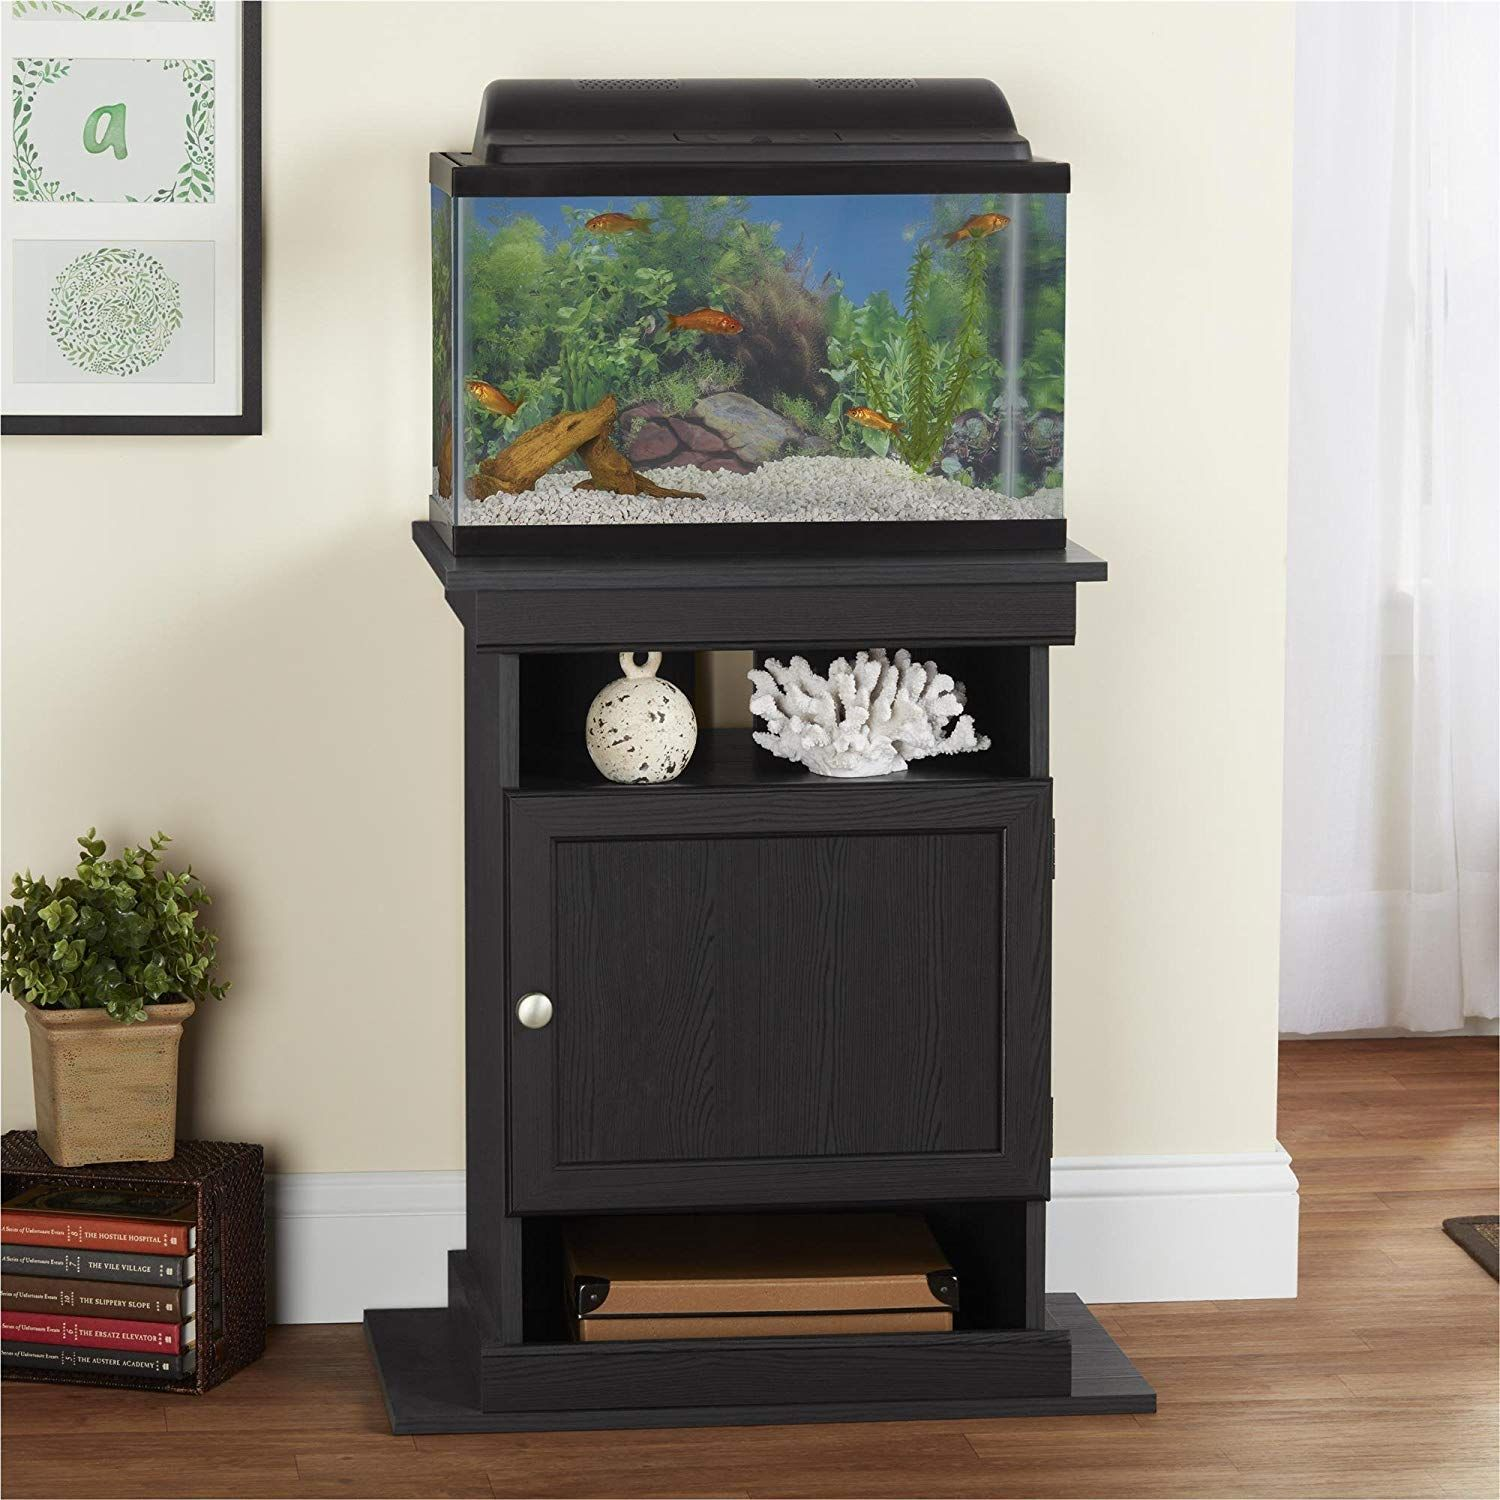 Aquarium Unterschrank Get An Aquarium Stand That Fits Your Needs With The Ameriwood Home Flipper 10 20 In 2020 Aquarium Stand Fish Tank Stand 20 Gallon Aquarium Stand